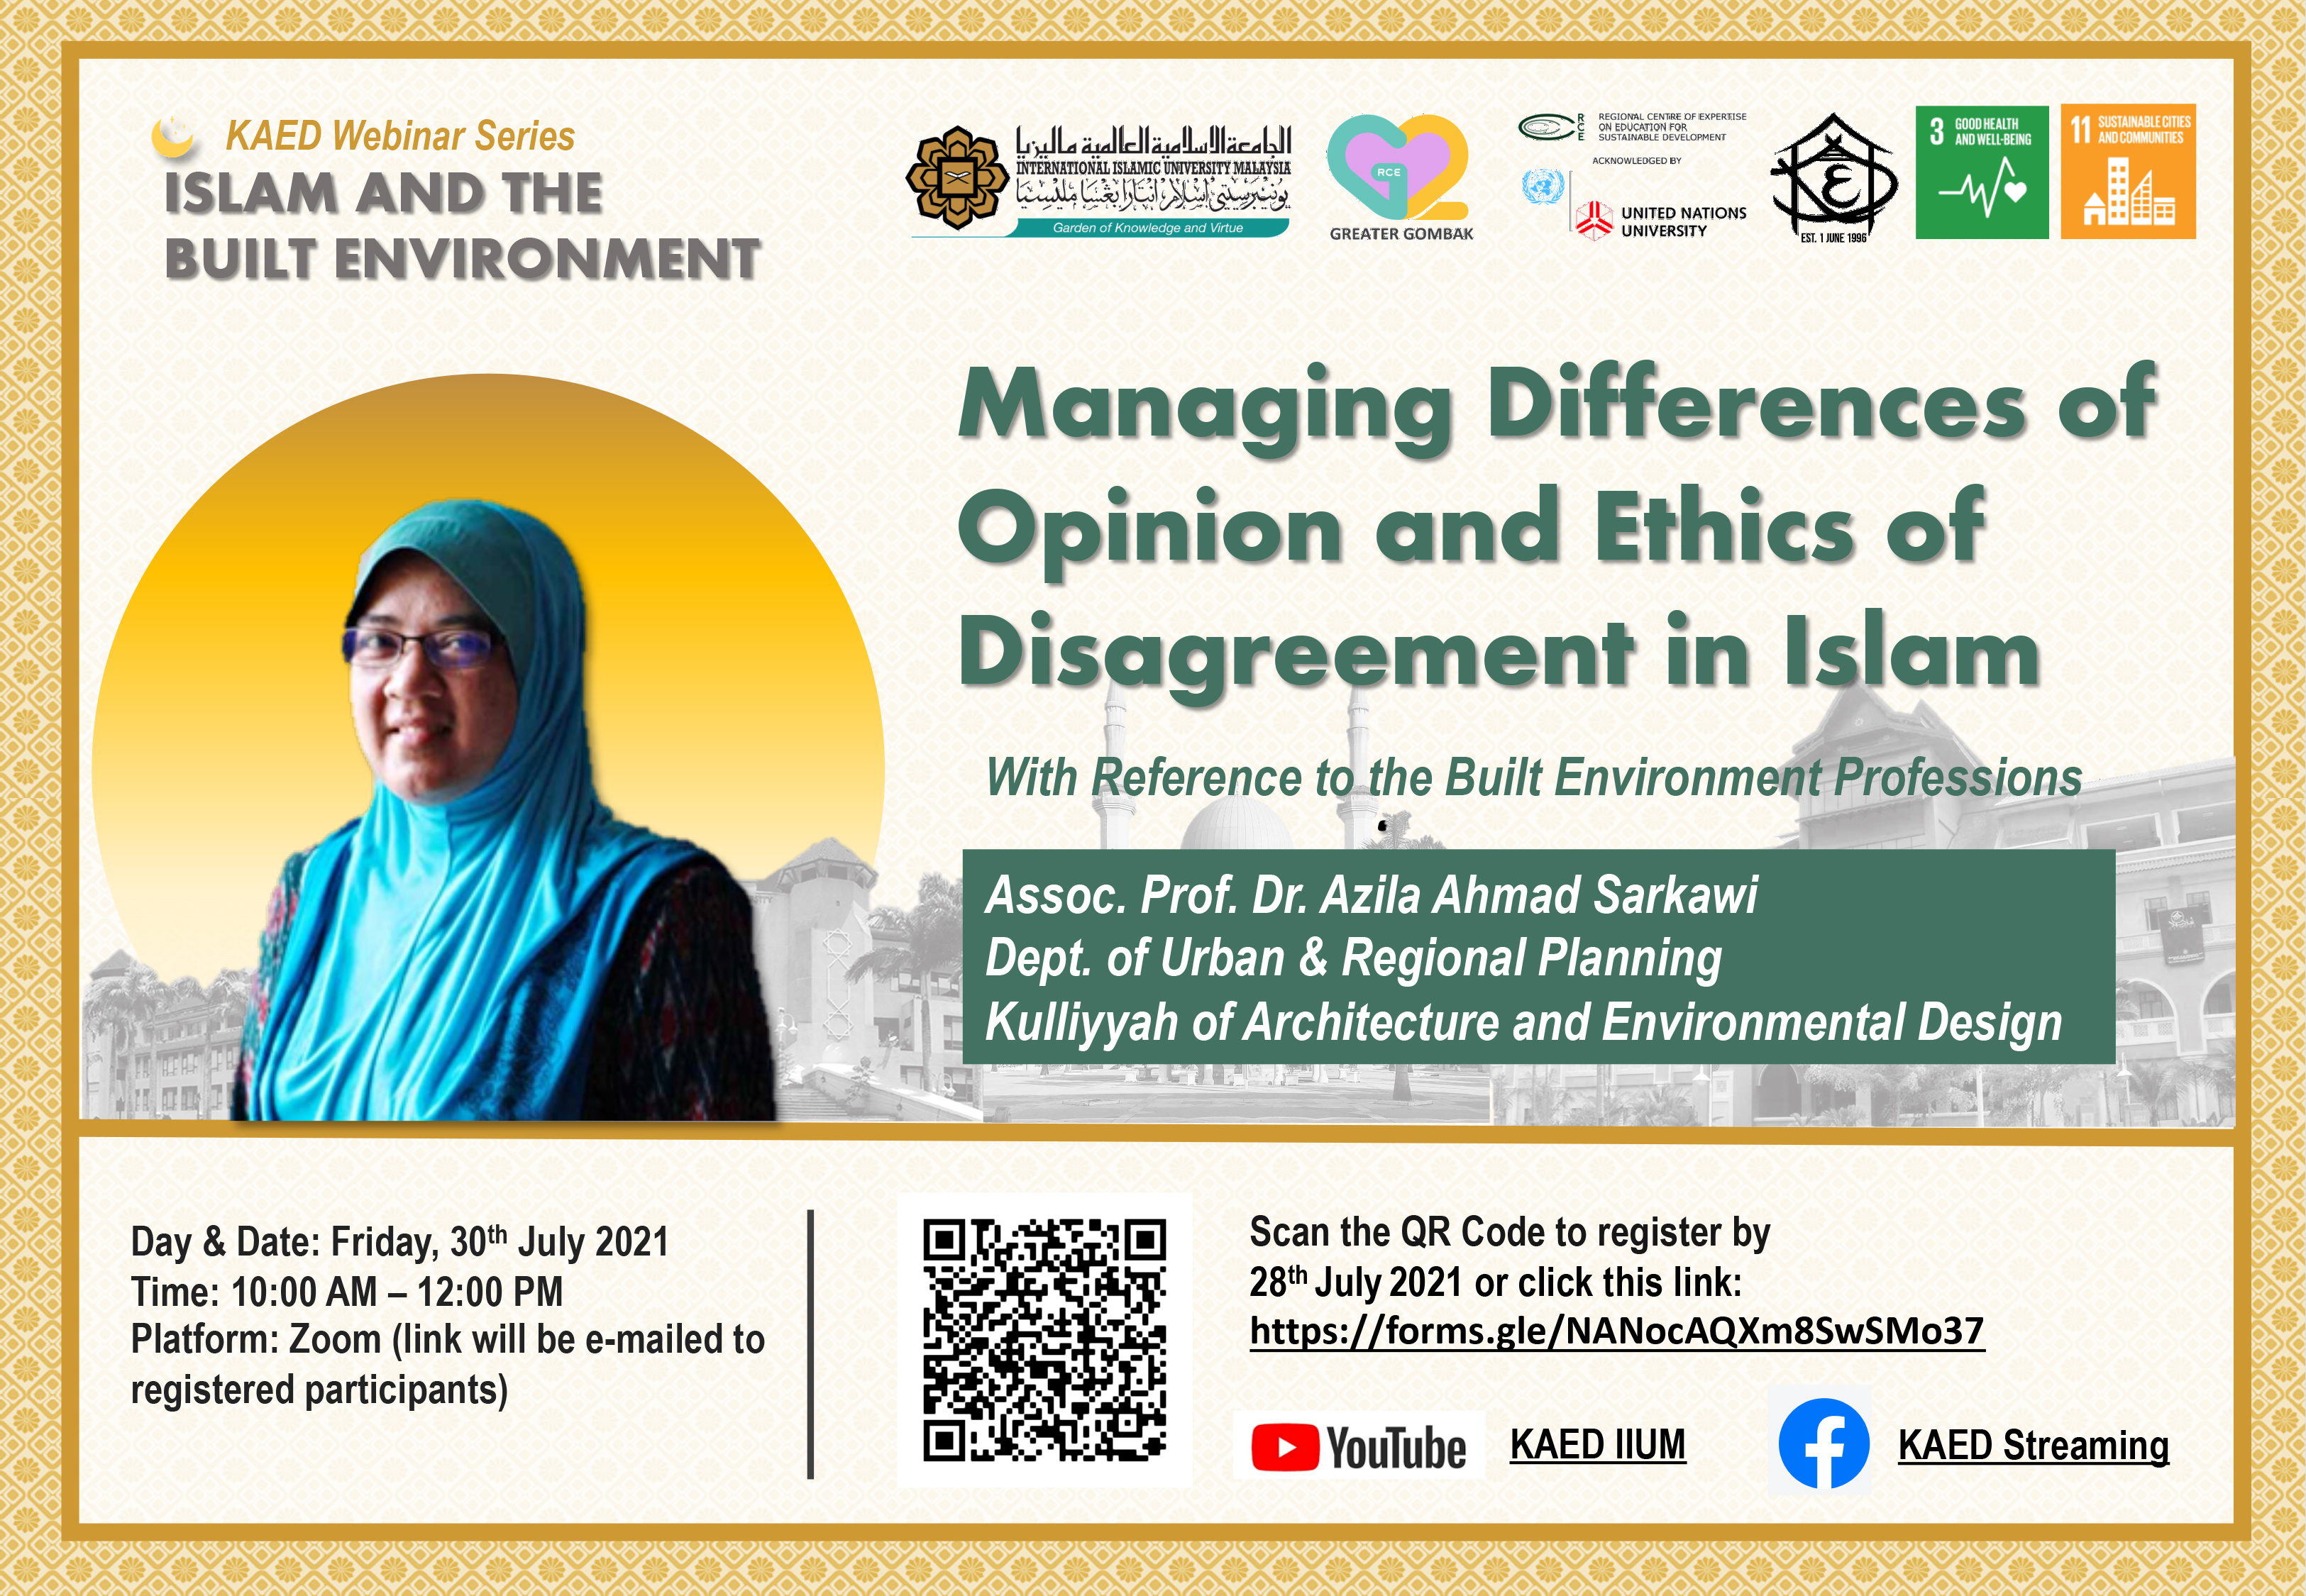 KAED IBE Webinar 2021: Managing Differences of Opinion and Ethics of Disagreement in Islam